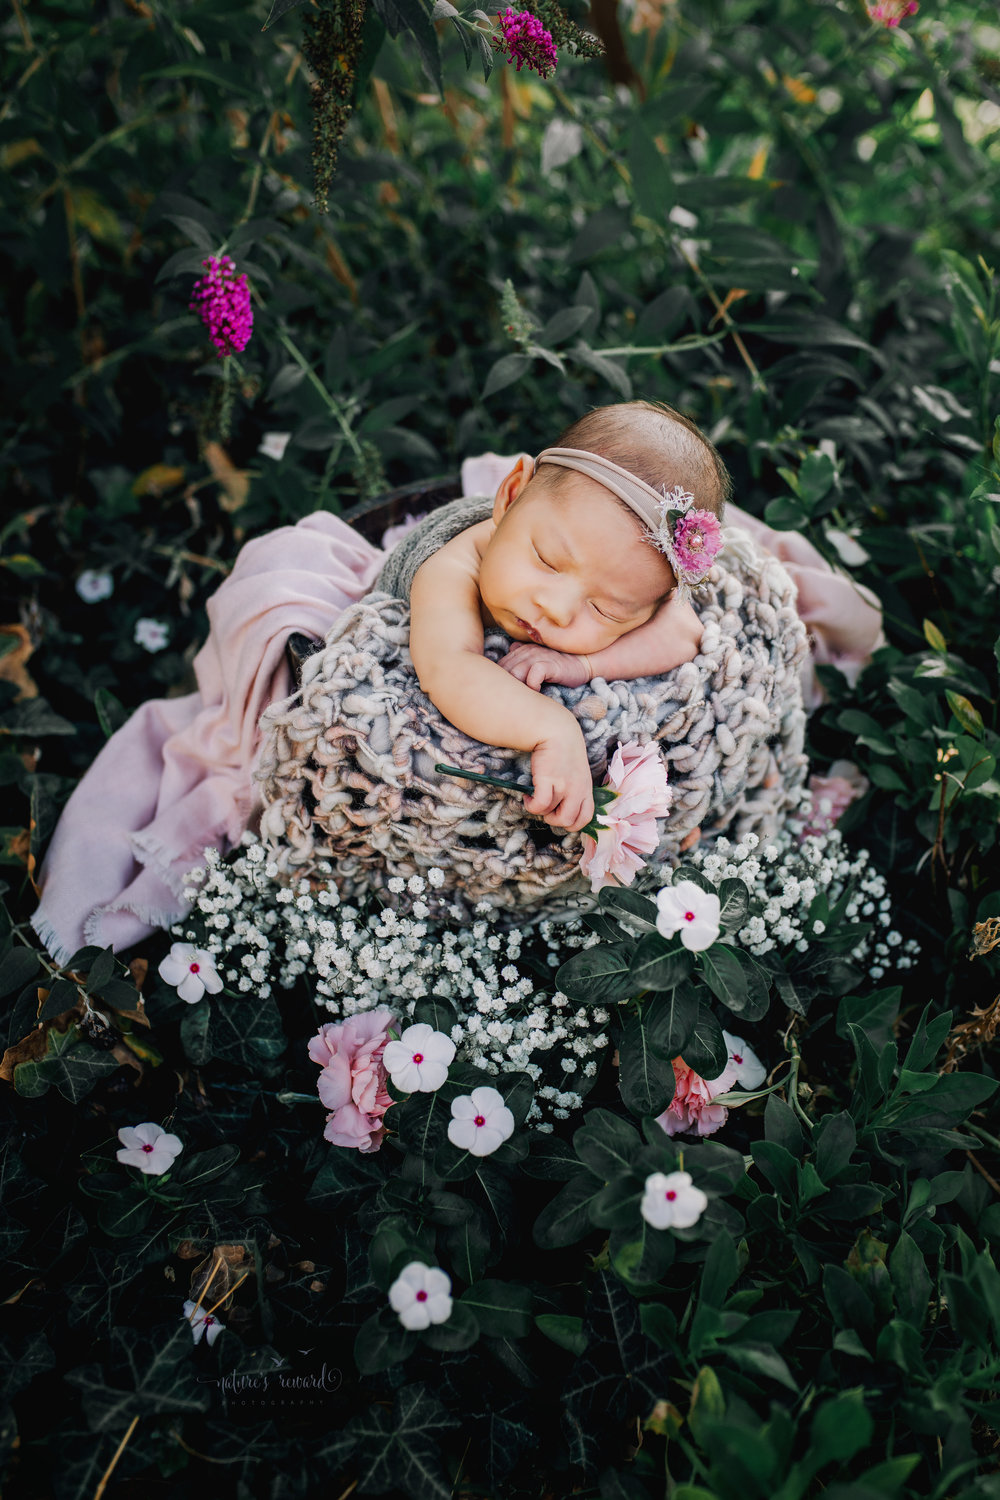 Gorgeous baby Newborn Girl in a bucket with pink and grey basket stuffers in a bucket in a garden surrounded by lush greens and white flowers, purple flowers, and pink carnations and my favorite baby breath in this portrait by Nature's Reward Photography.